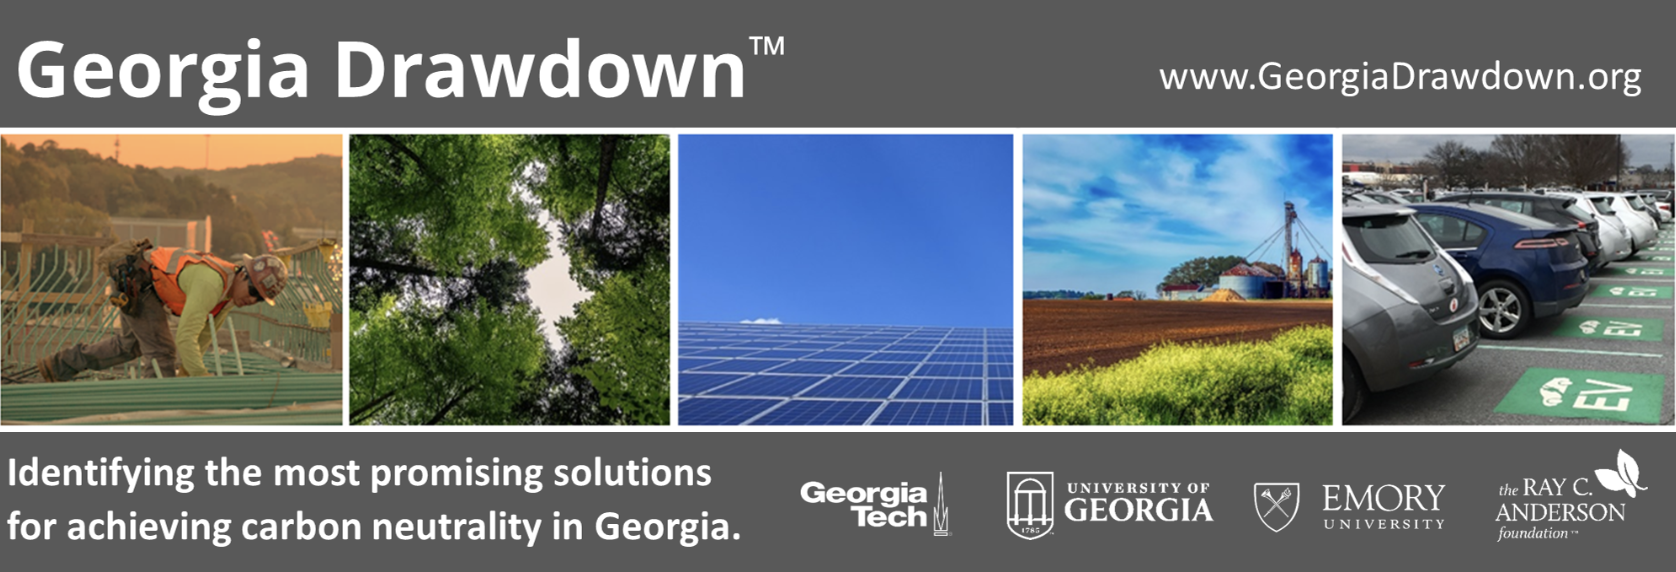 Georgia Drawdown